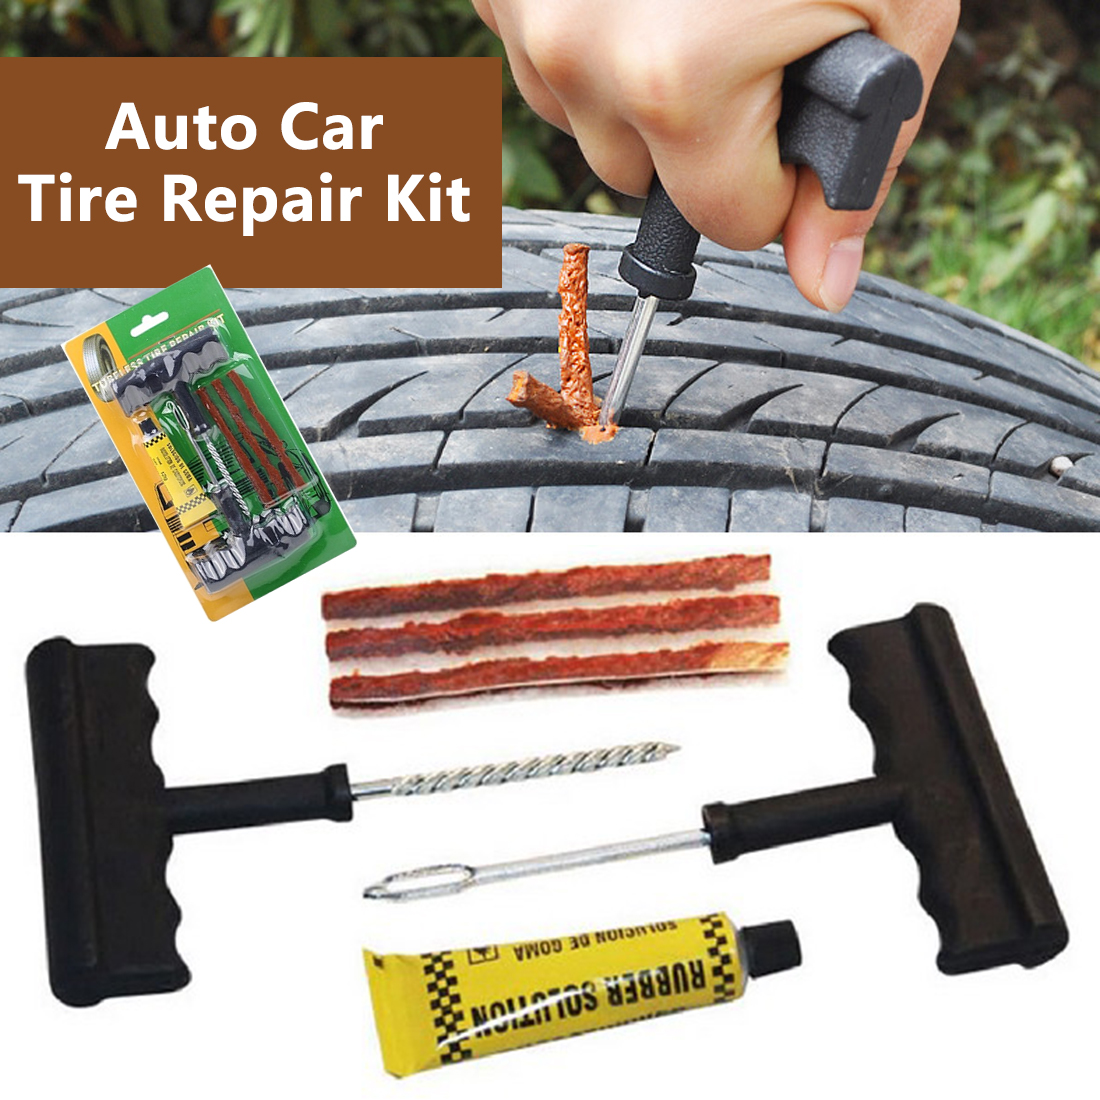 Tire Repair Tools Kit 6Pcs Car Accessories Auto Bike Auto Tubeless Tire Tyre Repair Kit Puncture Plug Repair Kit Hand Tools